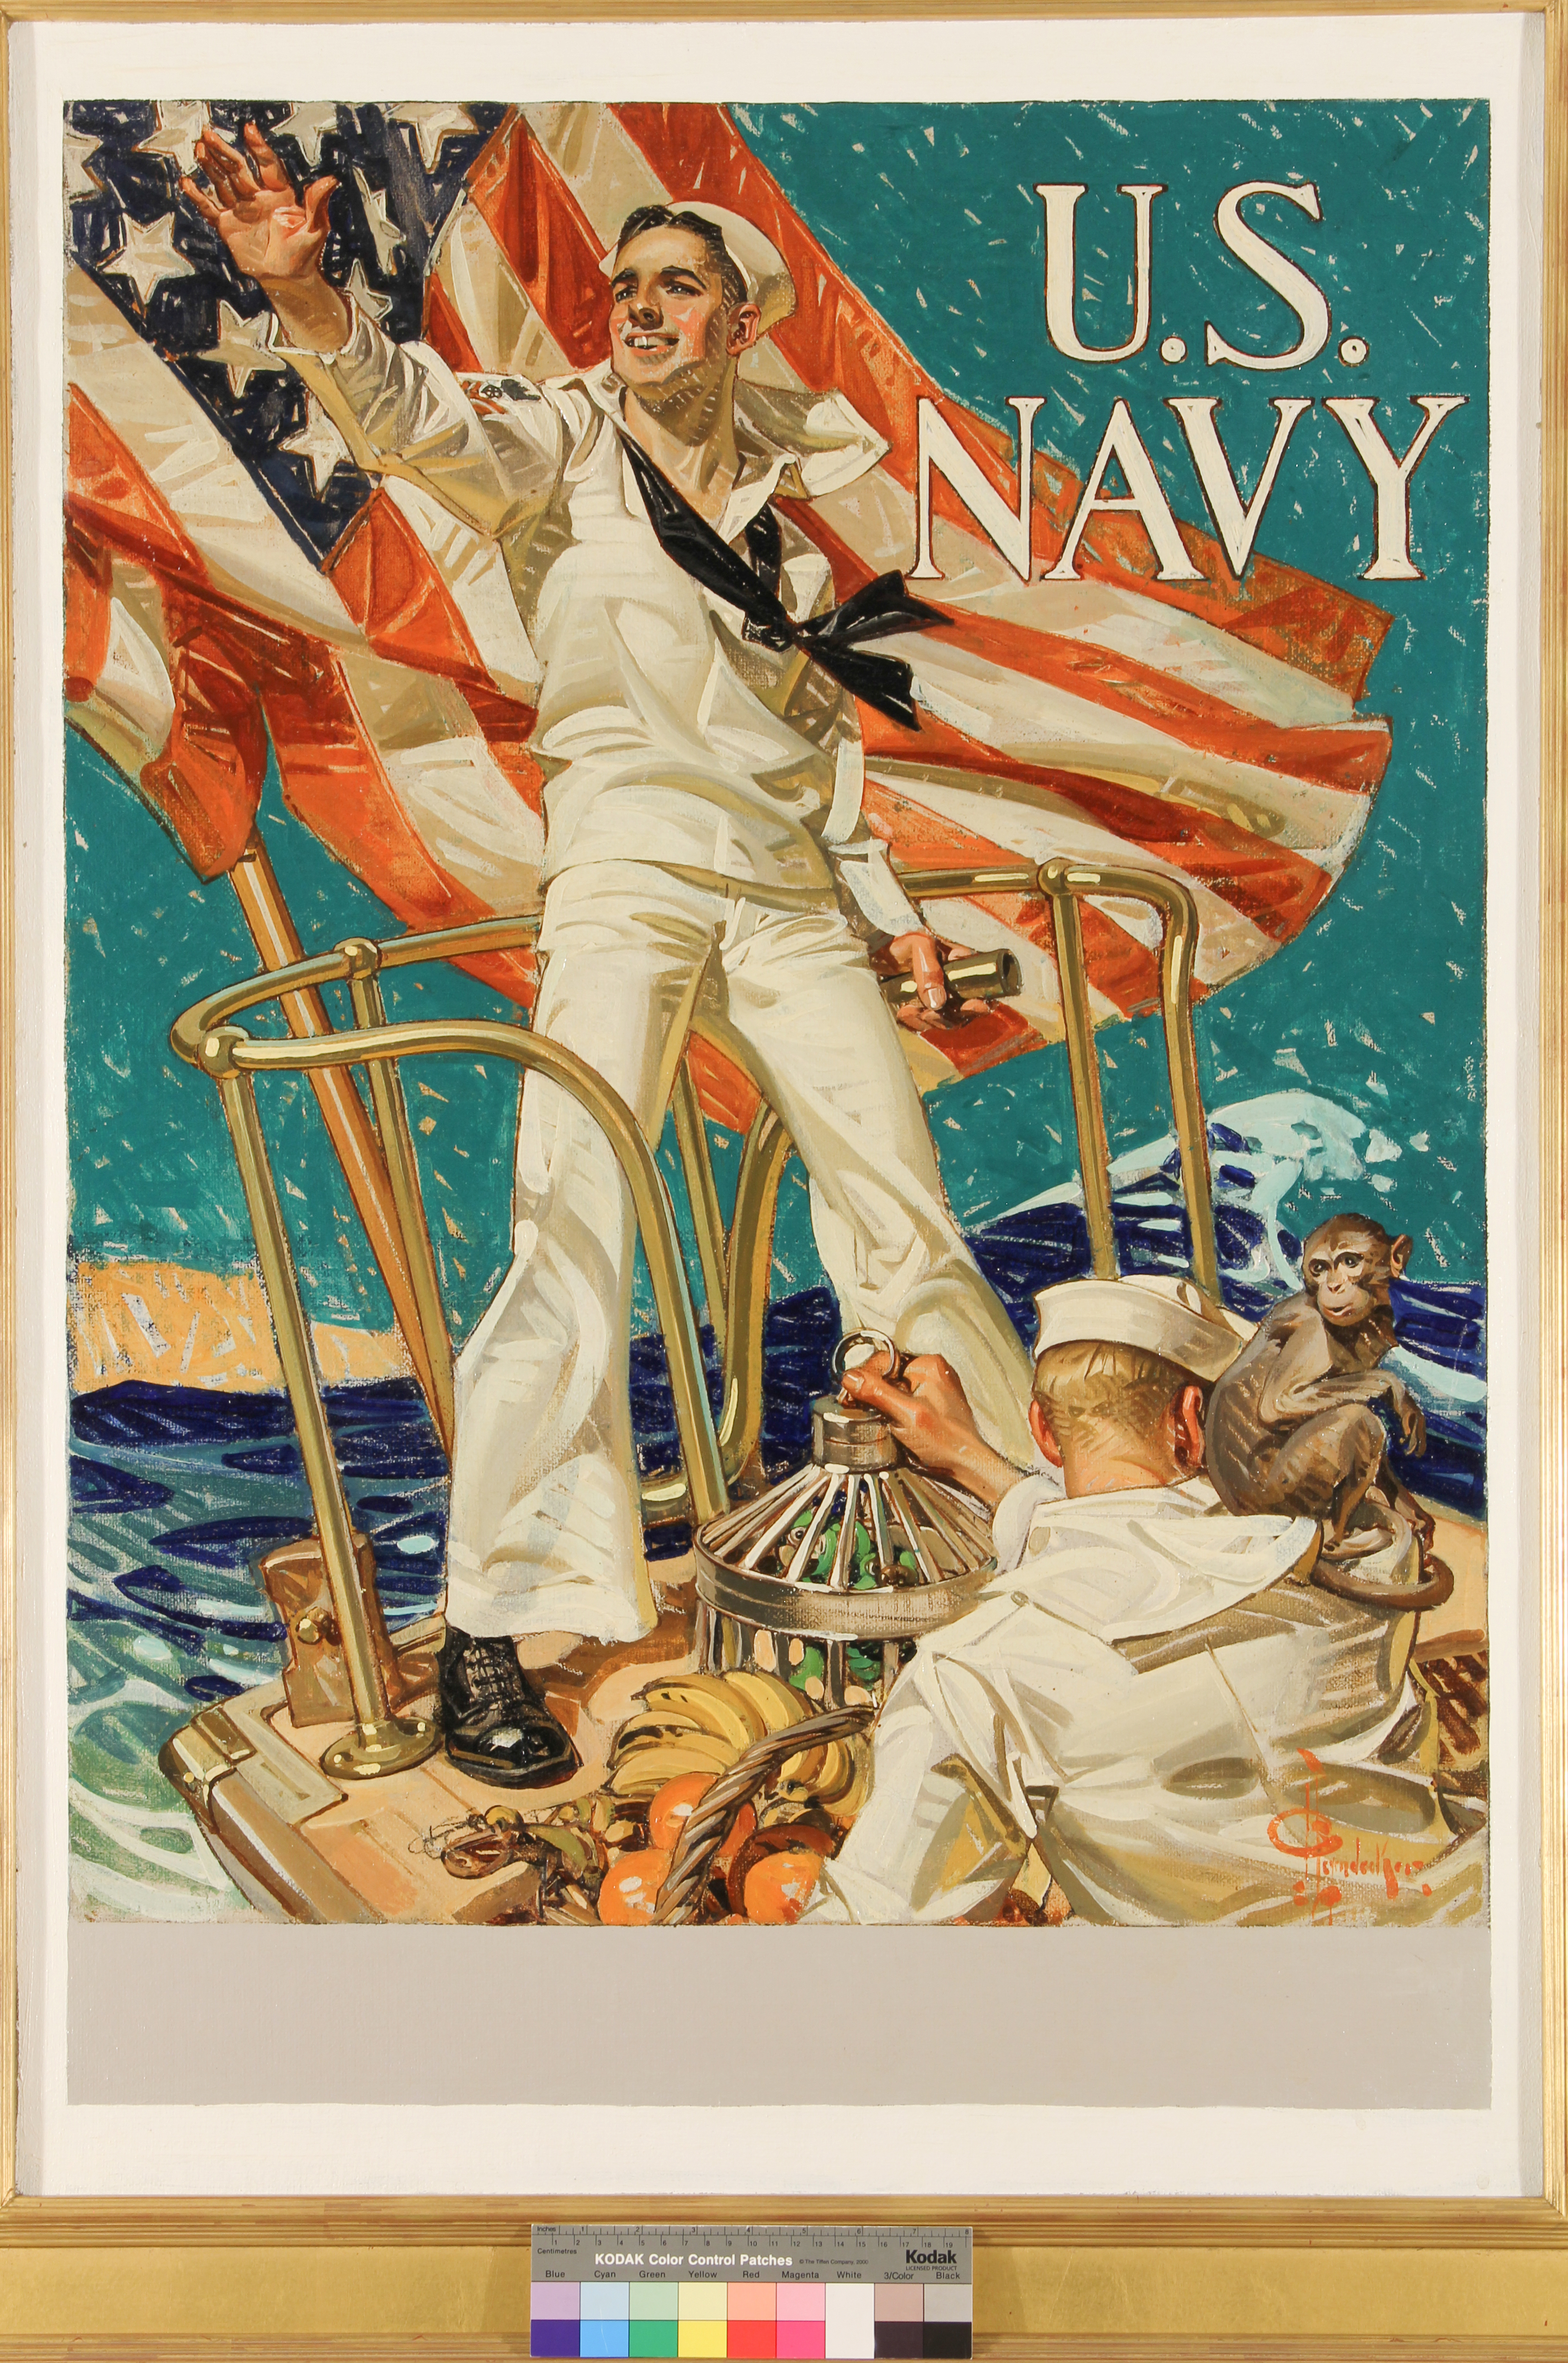 Hailing You For The U.S. Navy